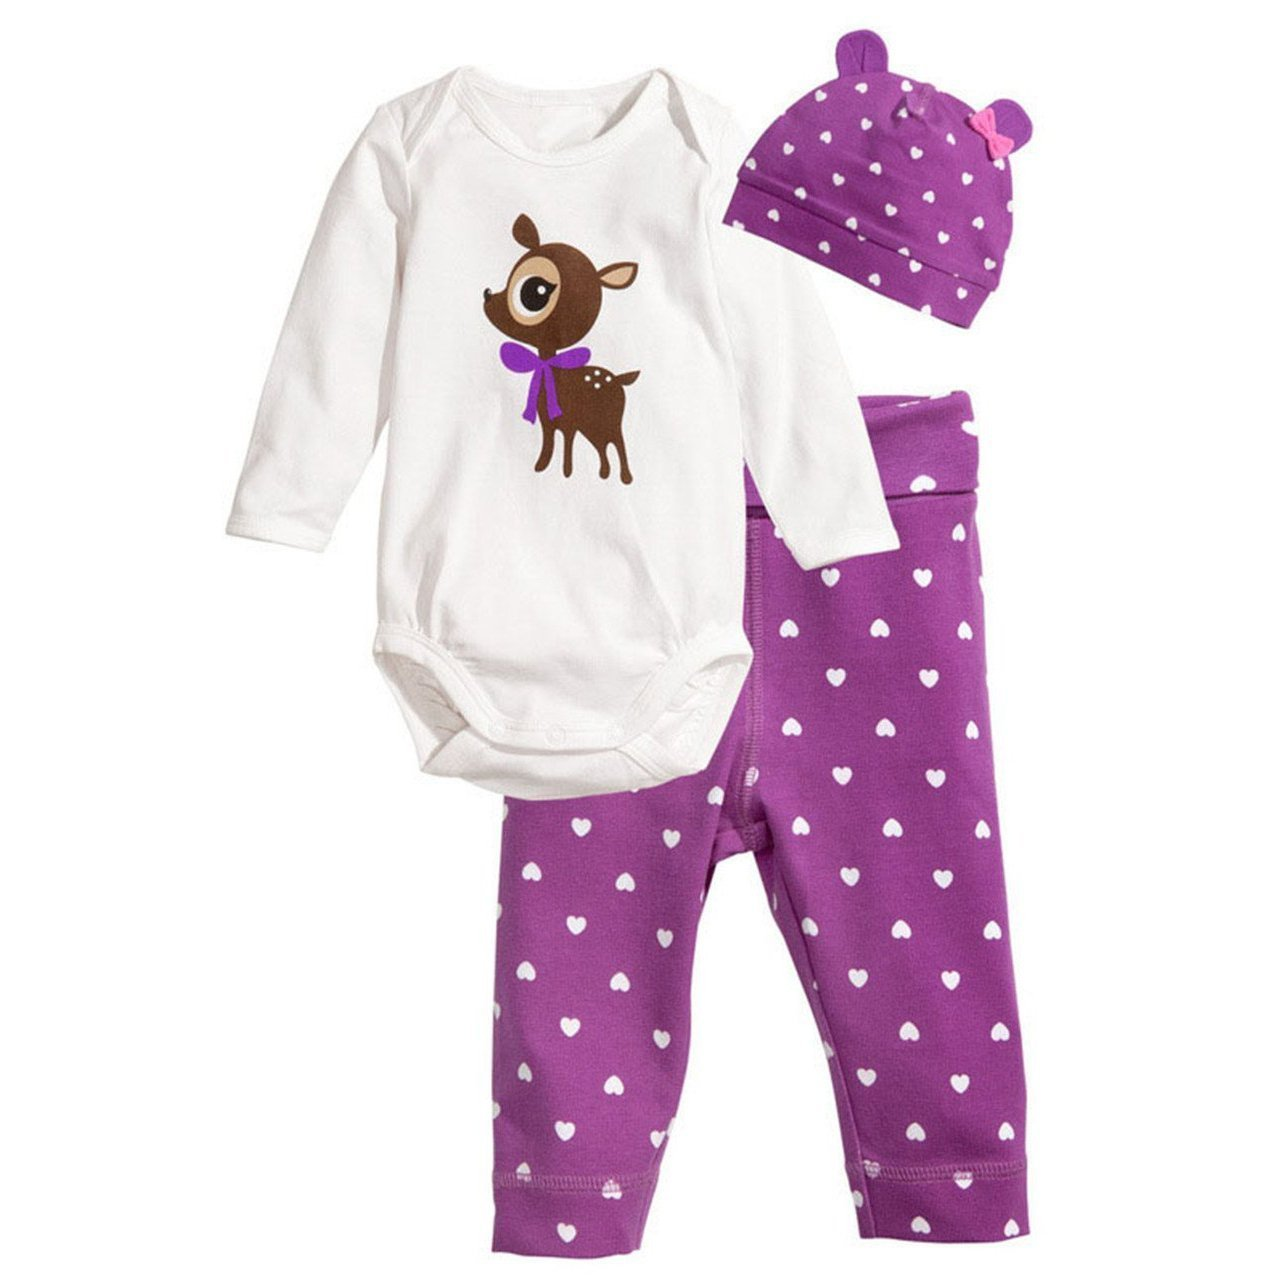 GQMART Baby Rompers Long Sleeve Cotton Baby Infant Cartoon Animal Deer Newborn Baby Clothes Romper+Hat+Pants 3Pcs Clothing Set -Purple,95Cm